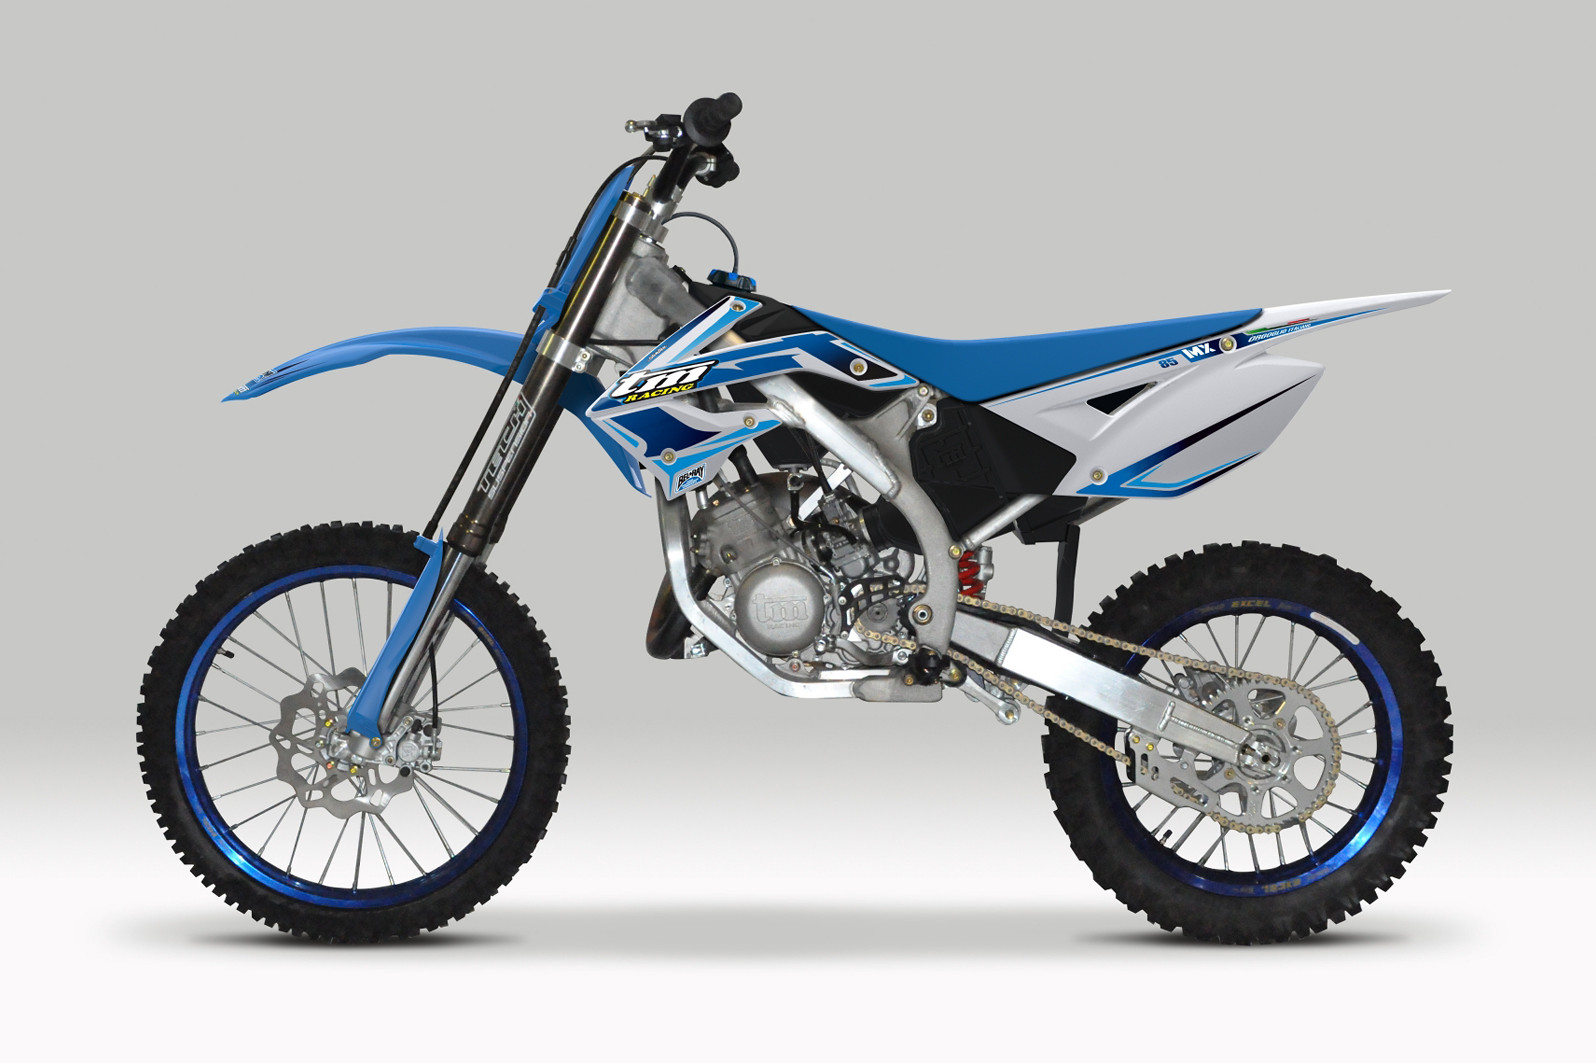 2013 tm racing mx 85 junior reviews comparisons specs. Black Bedroom Furniture Sets. Home Design Ideas